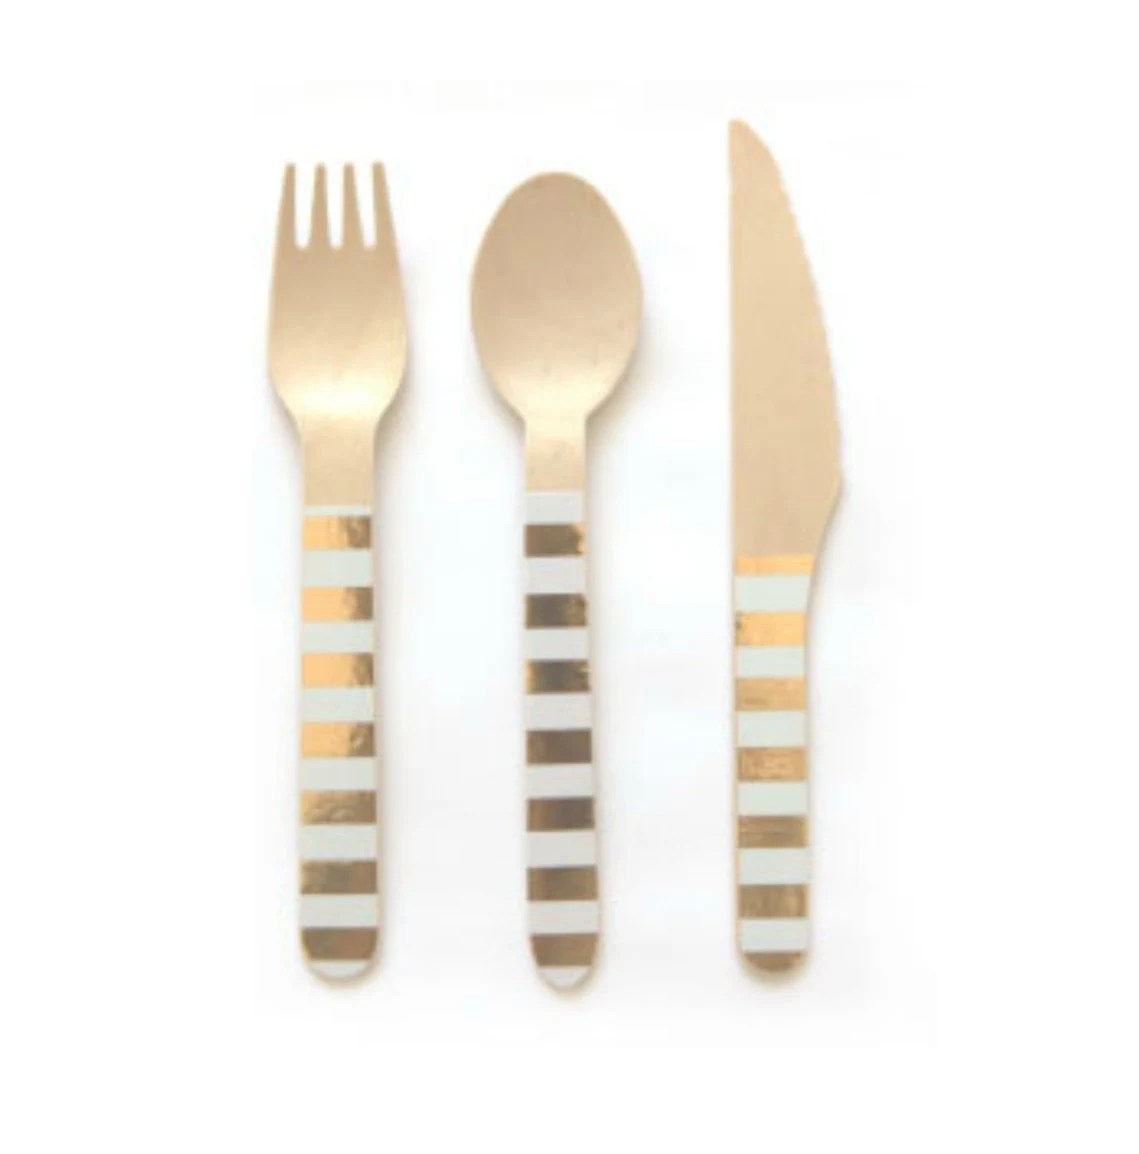 Gold Cutlery Sets Gold And White Striped Wooden Cutlery Set Of 24 Gold And White Stripe Wooden Forks Spoons Or Knives The Perfect Touch For Any Party